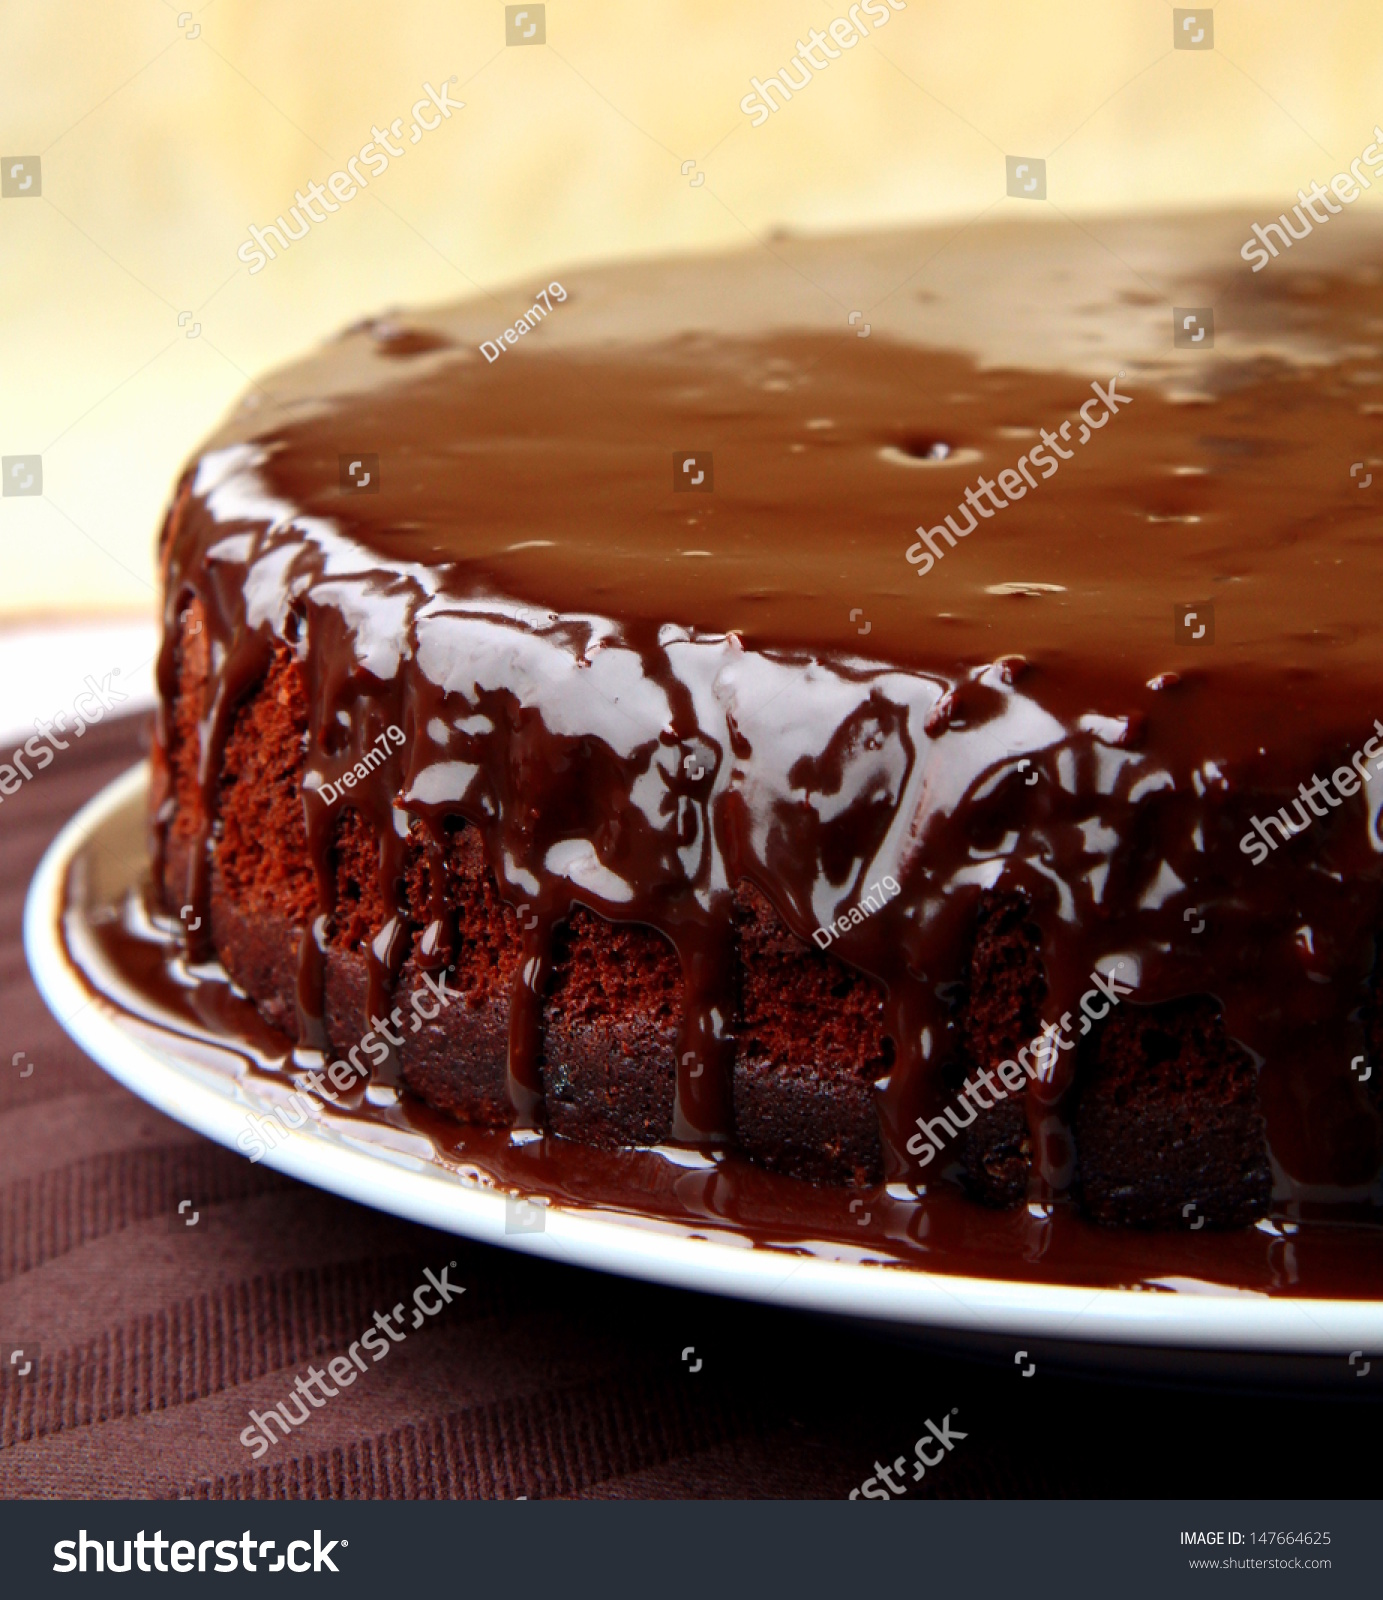 super chocolate cake with chocolate sauce #147664625